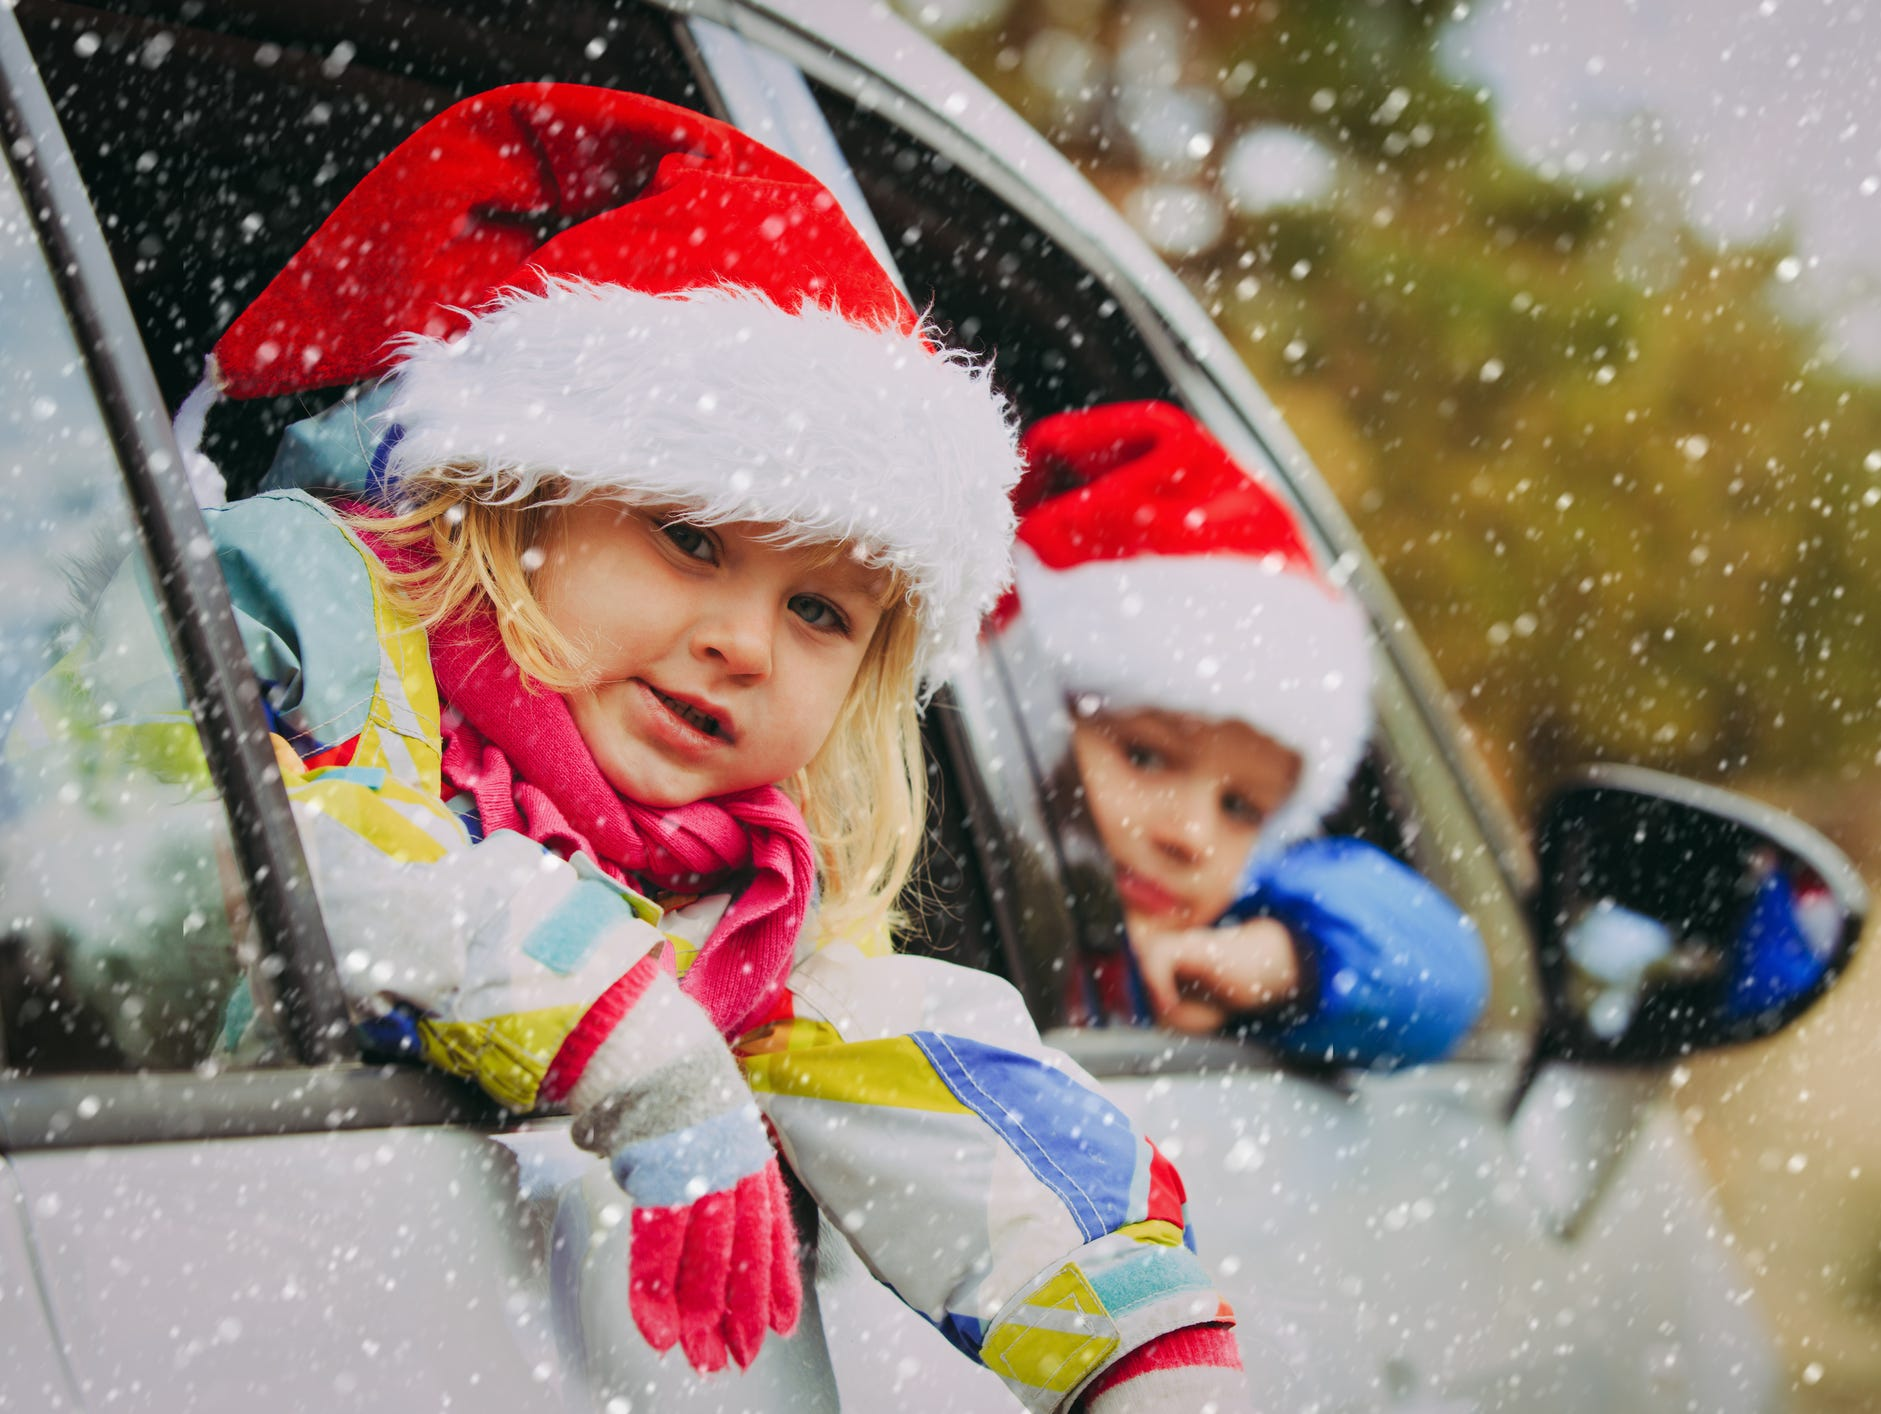 Planning a road trip this holiday season to visit family?